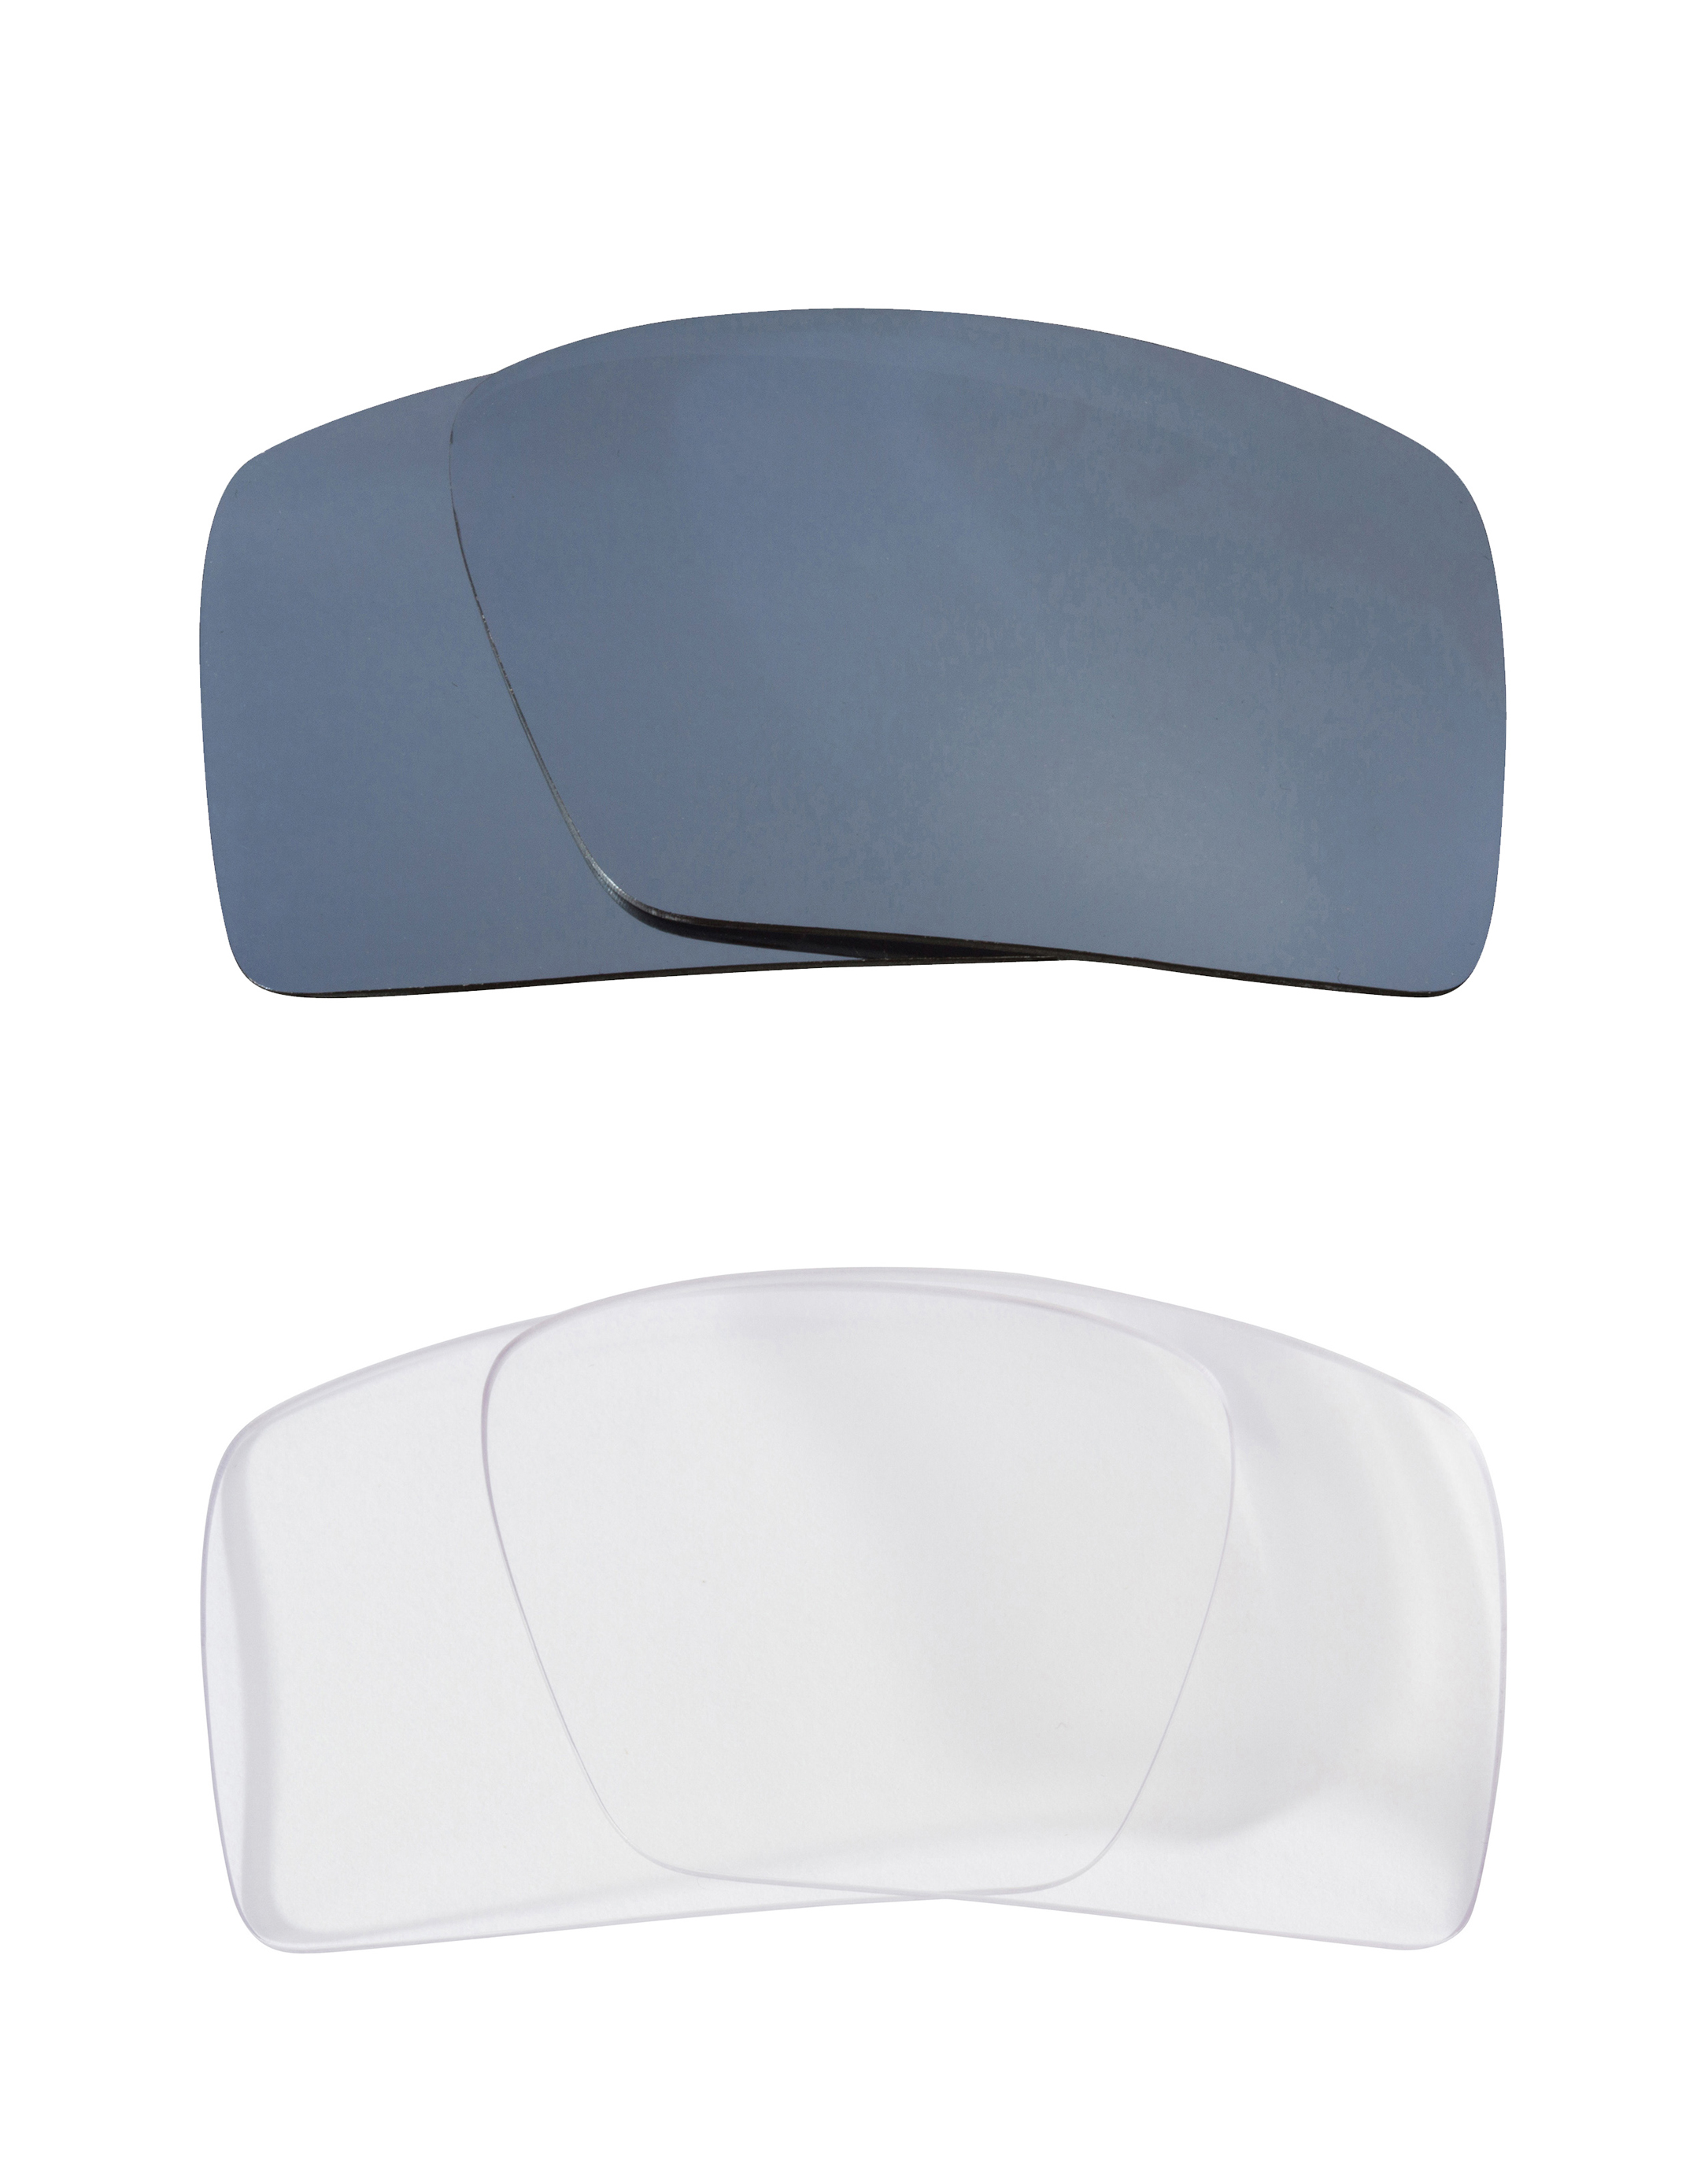 2b11e98778c Details about Eyepatch 2 Replacement Lenses Crystal Clear   Silver by SEEK  fits OAKLEY